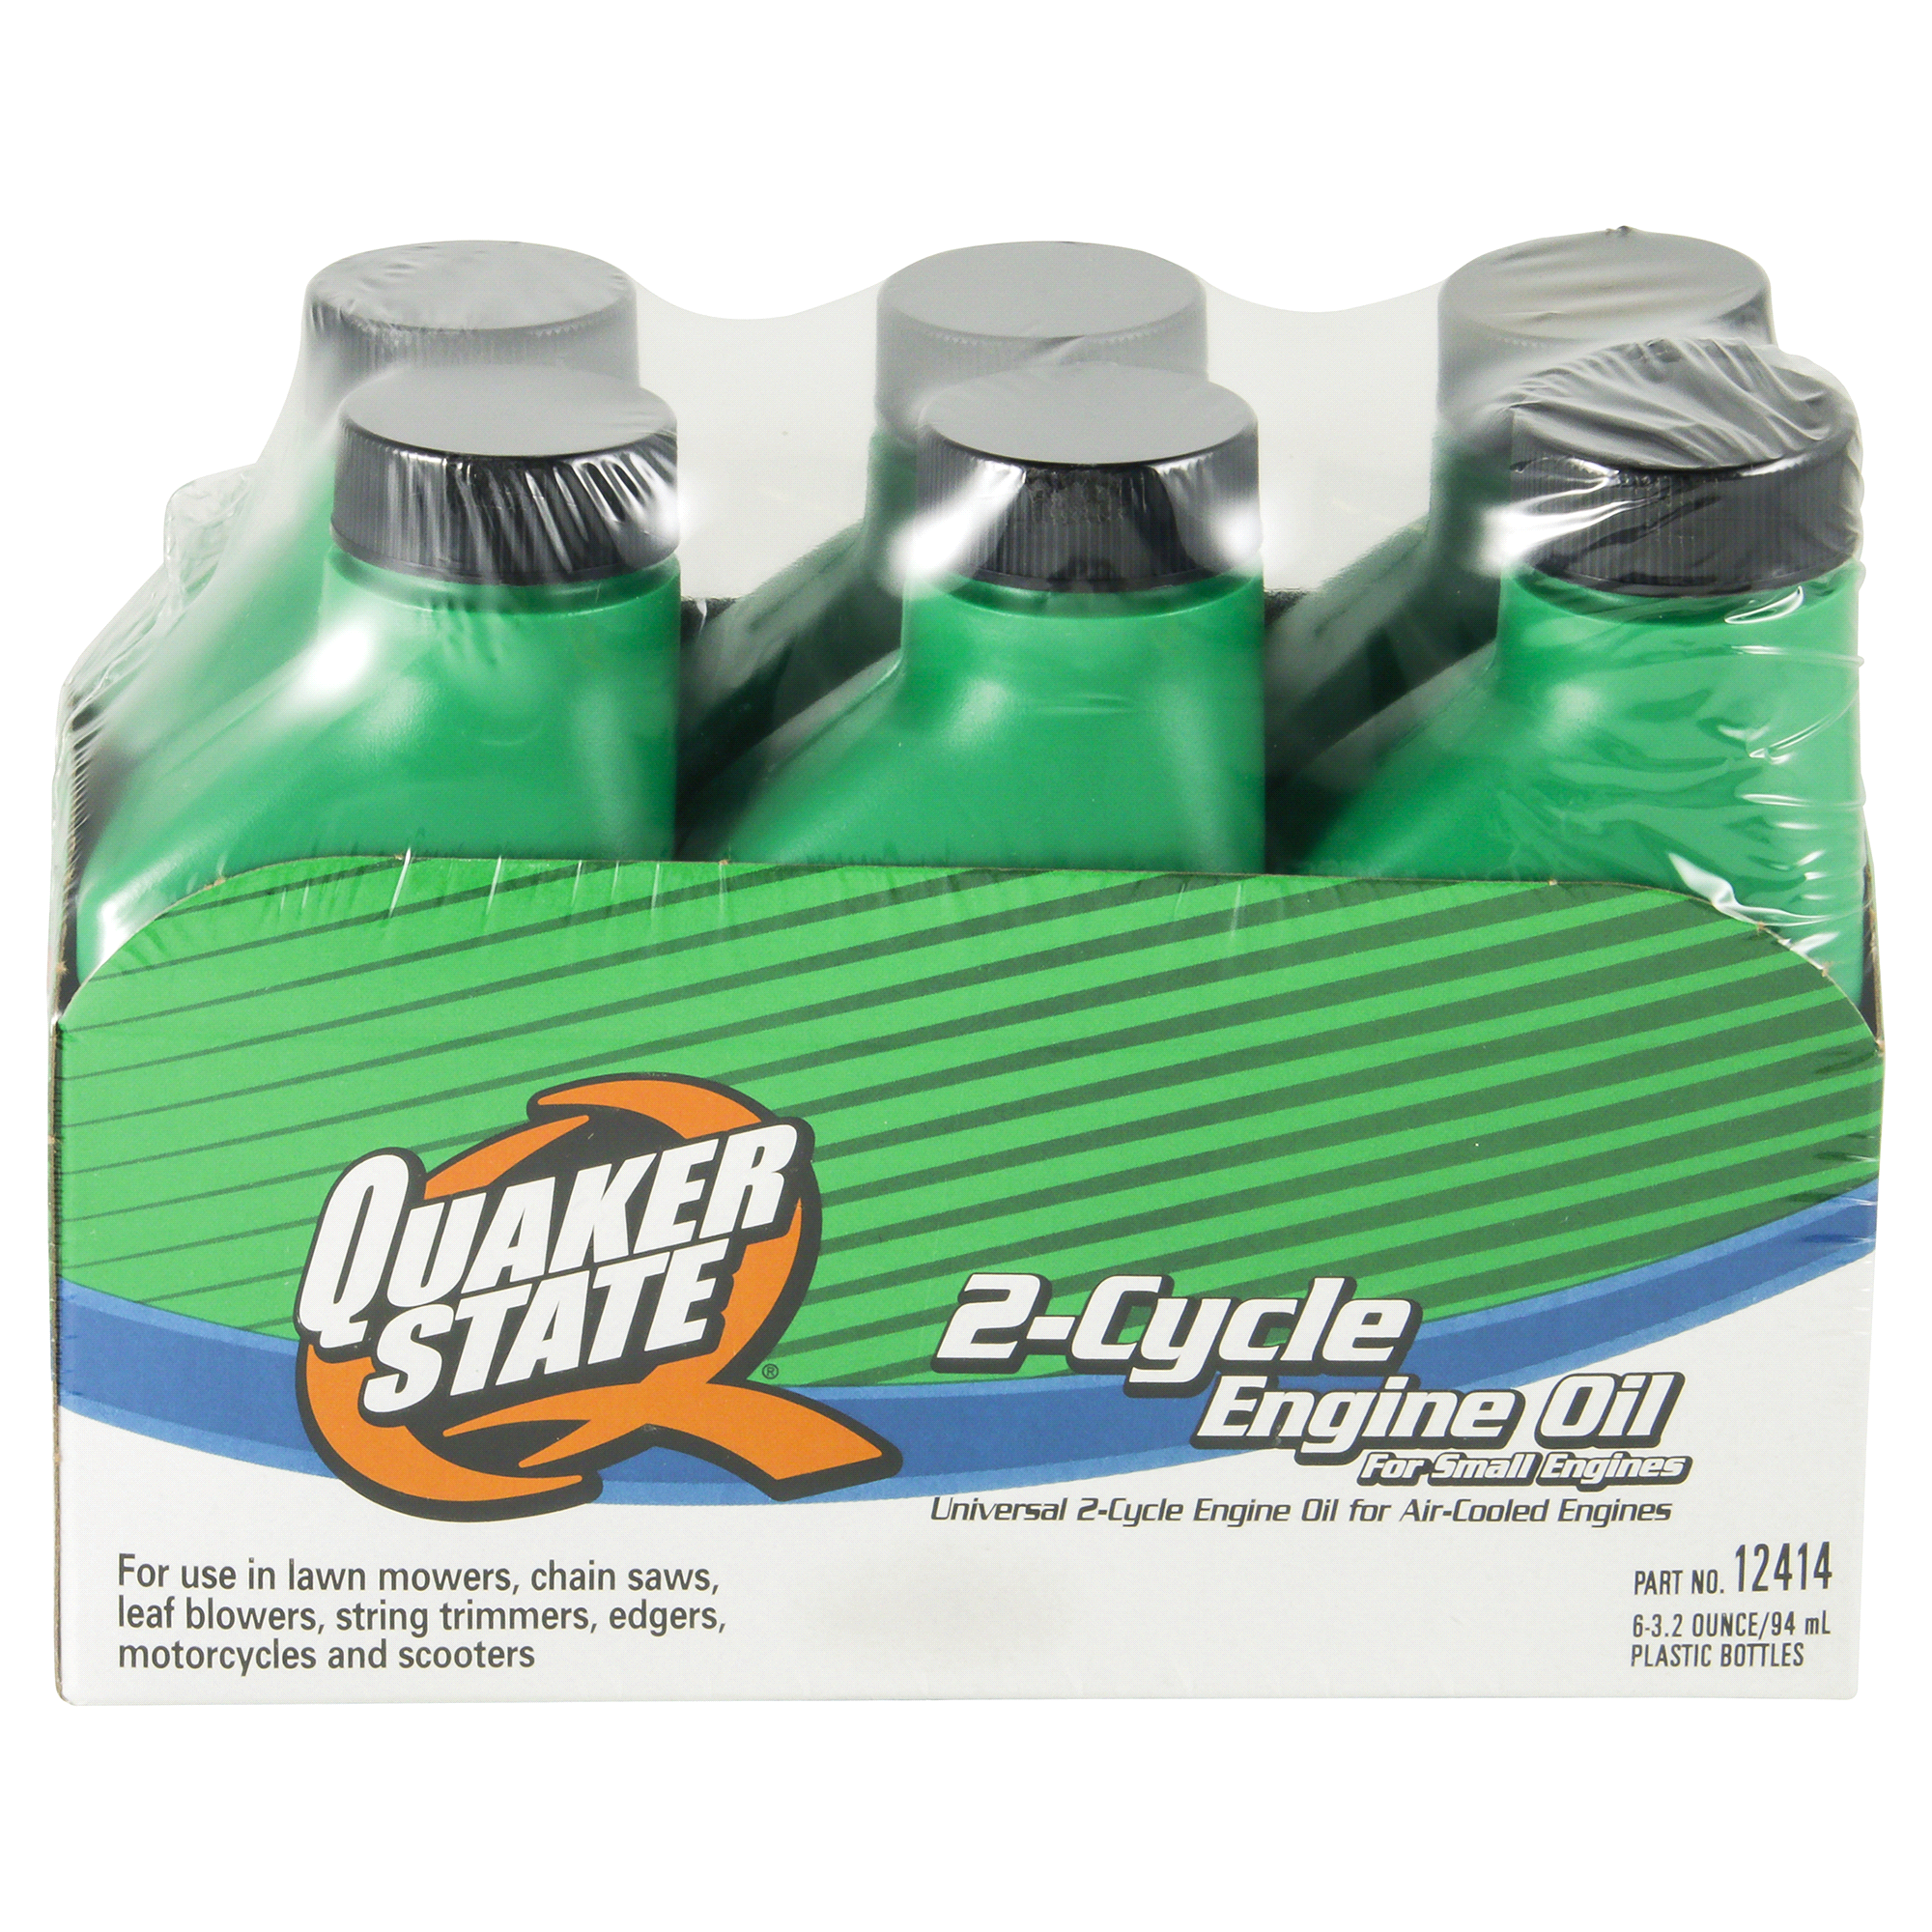 Quaker State Universal 2 Cycle Engine Oil 6 Pk 32oz Bottles